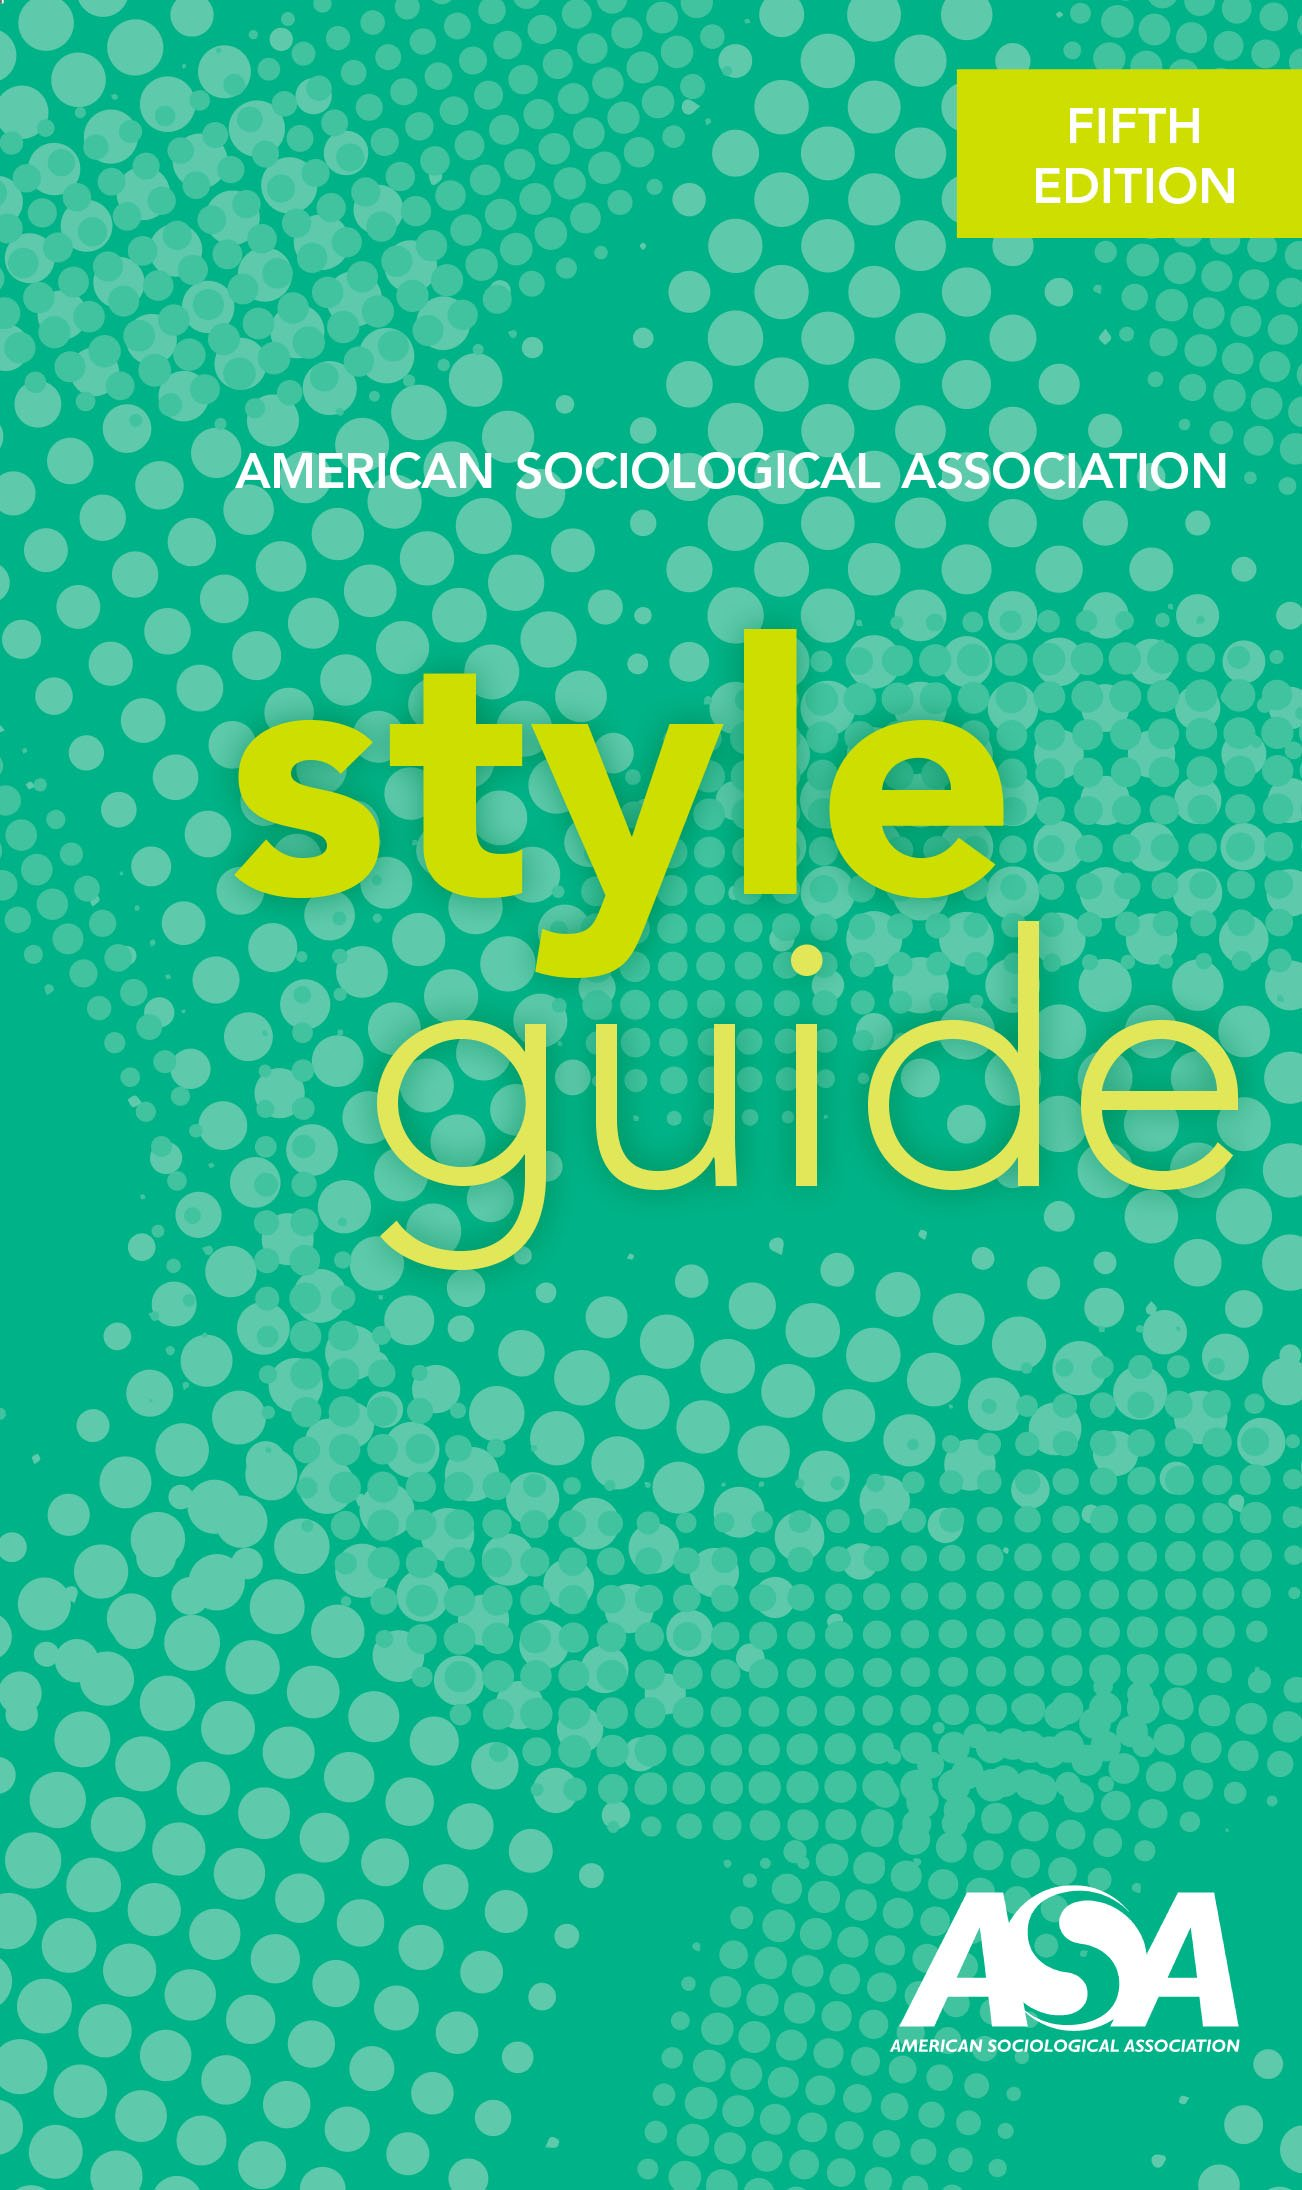 Cover art for ASA style guide